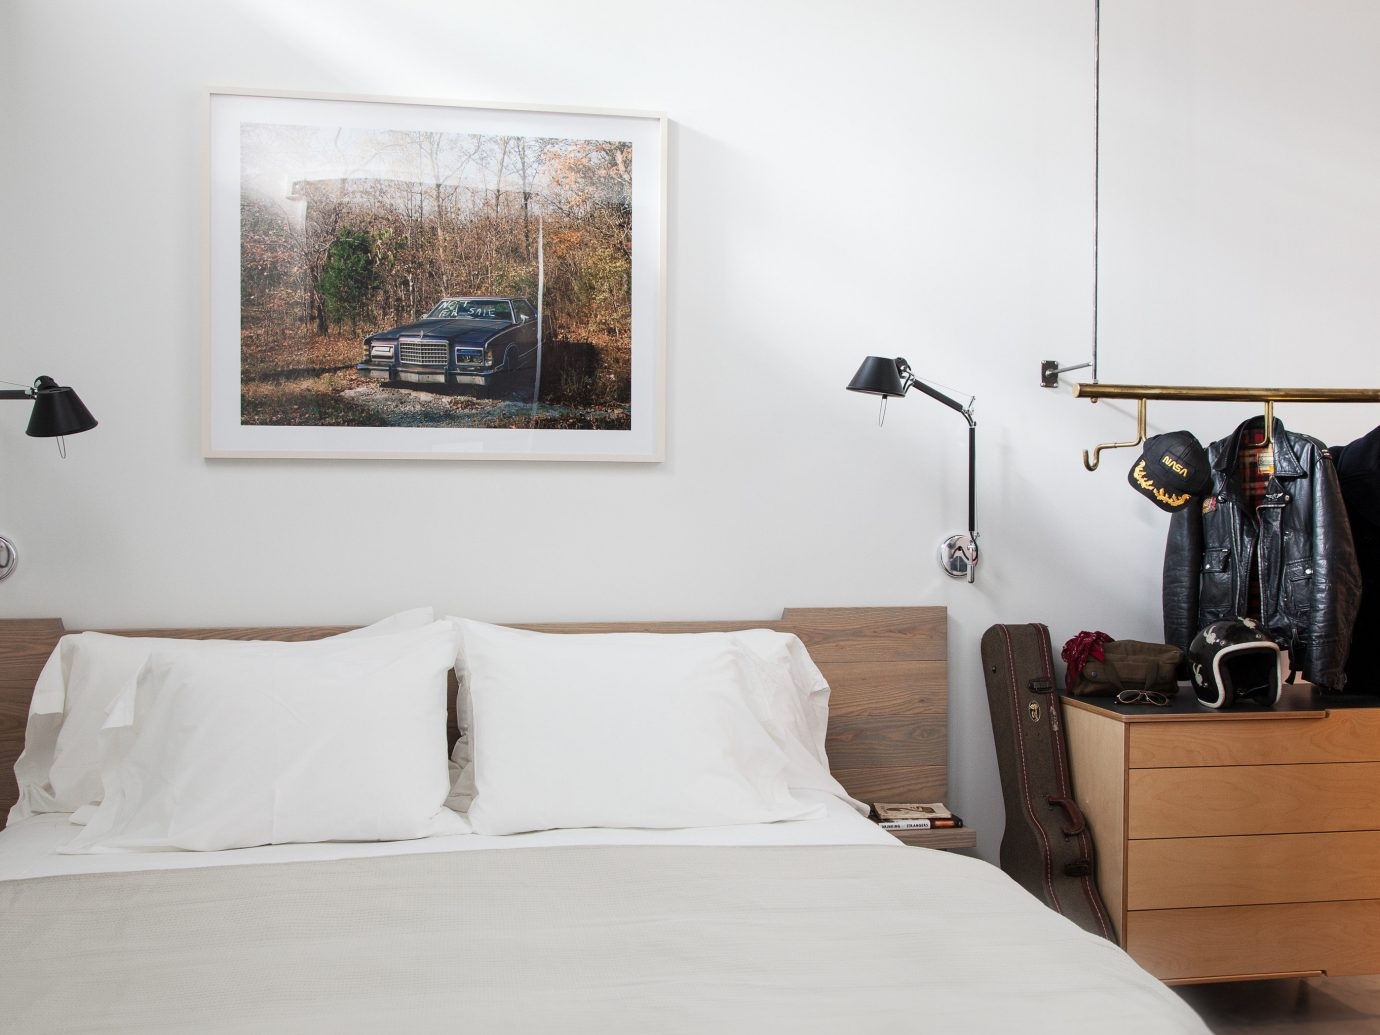 Boutique Hotels Trip Ideas wall indoor bed room property Bedroom furniture scene interior design floor pillow home apartment decorated painting